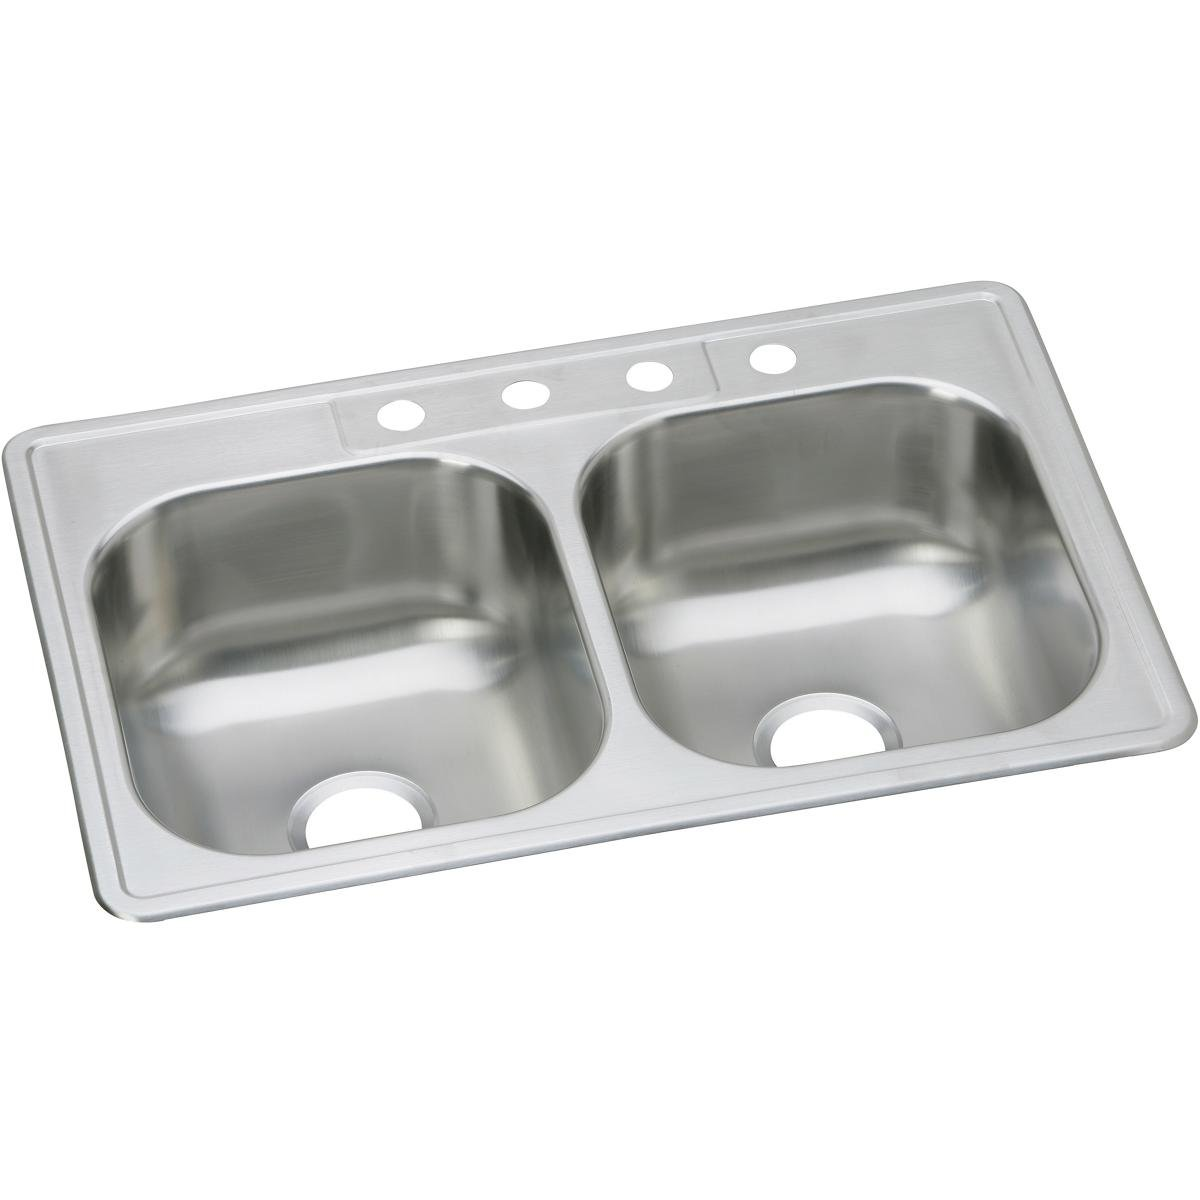 Dayton DSE233223 Equal Double Bowl Top Mount Stainless Steel Sink